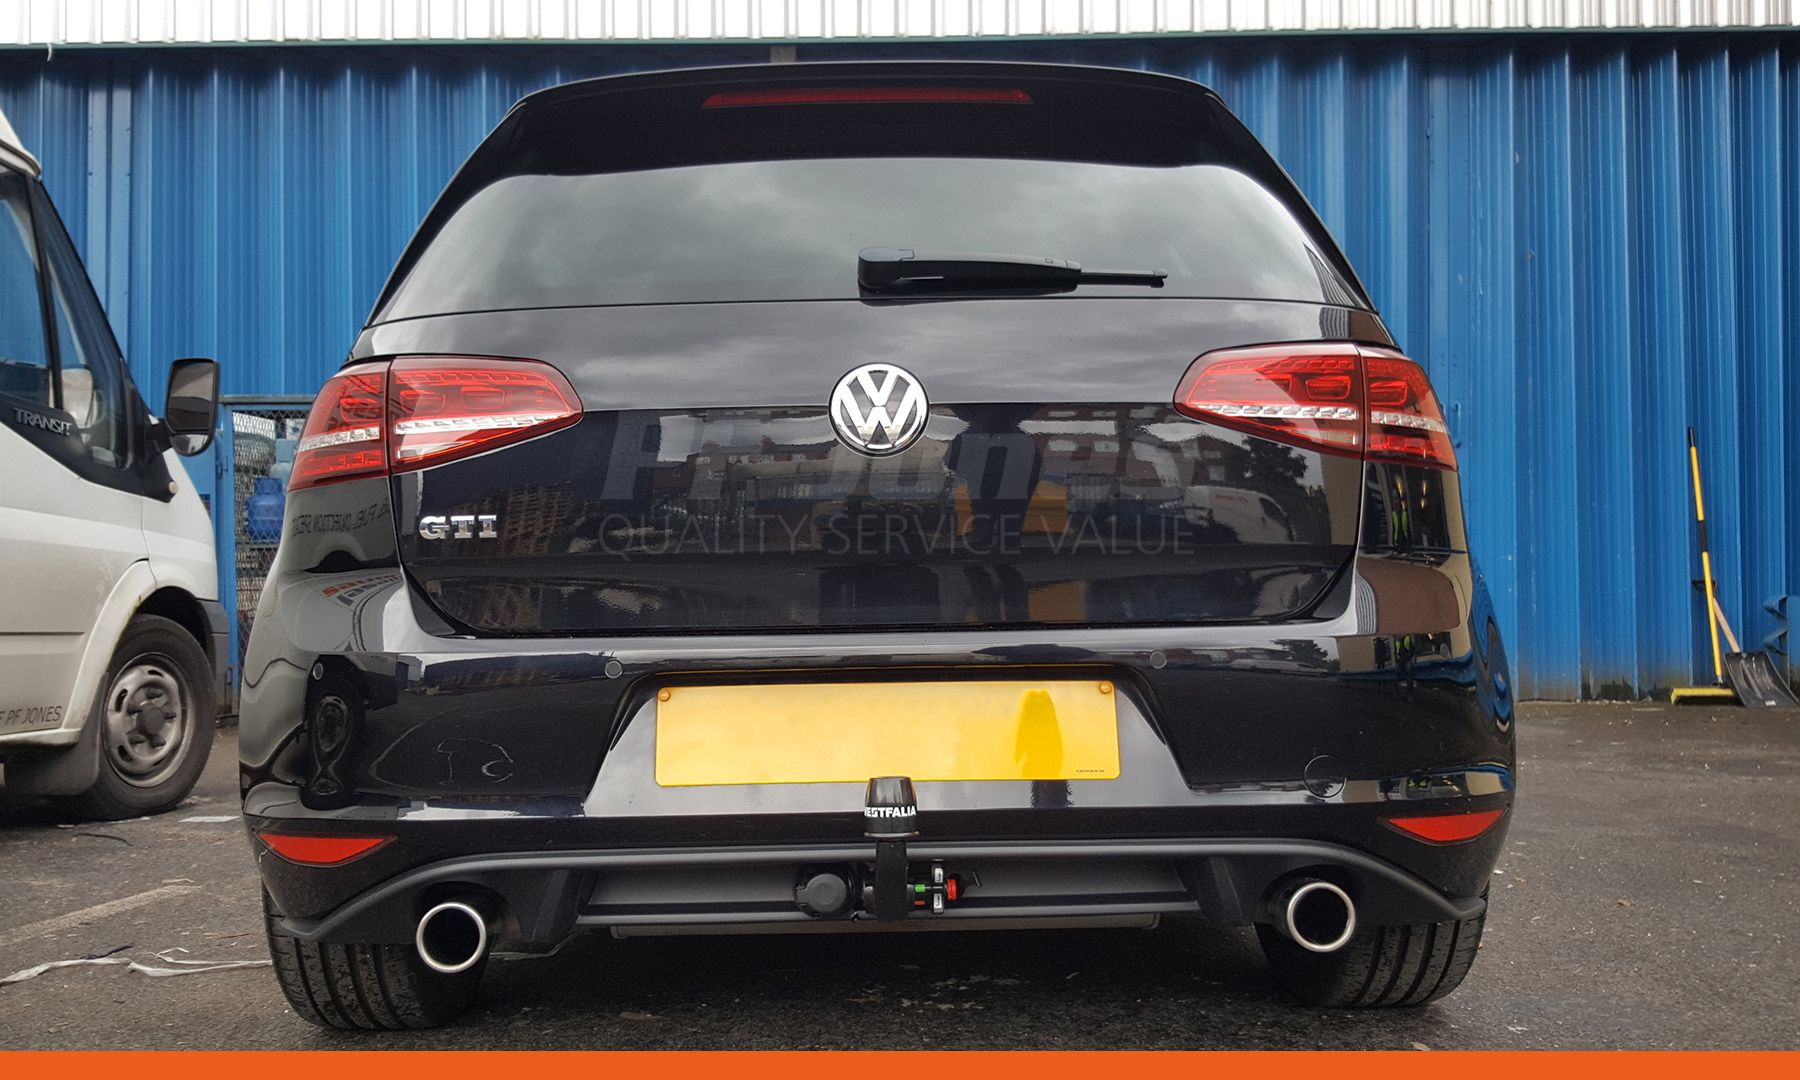 Volkswagen Golf Hatchback Gti 2014 Fitted With A Westfalia